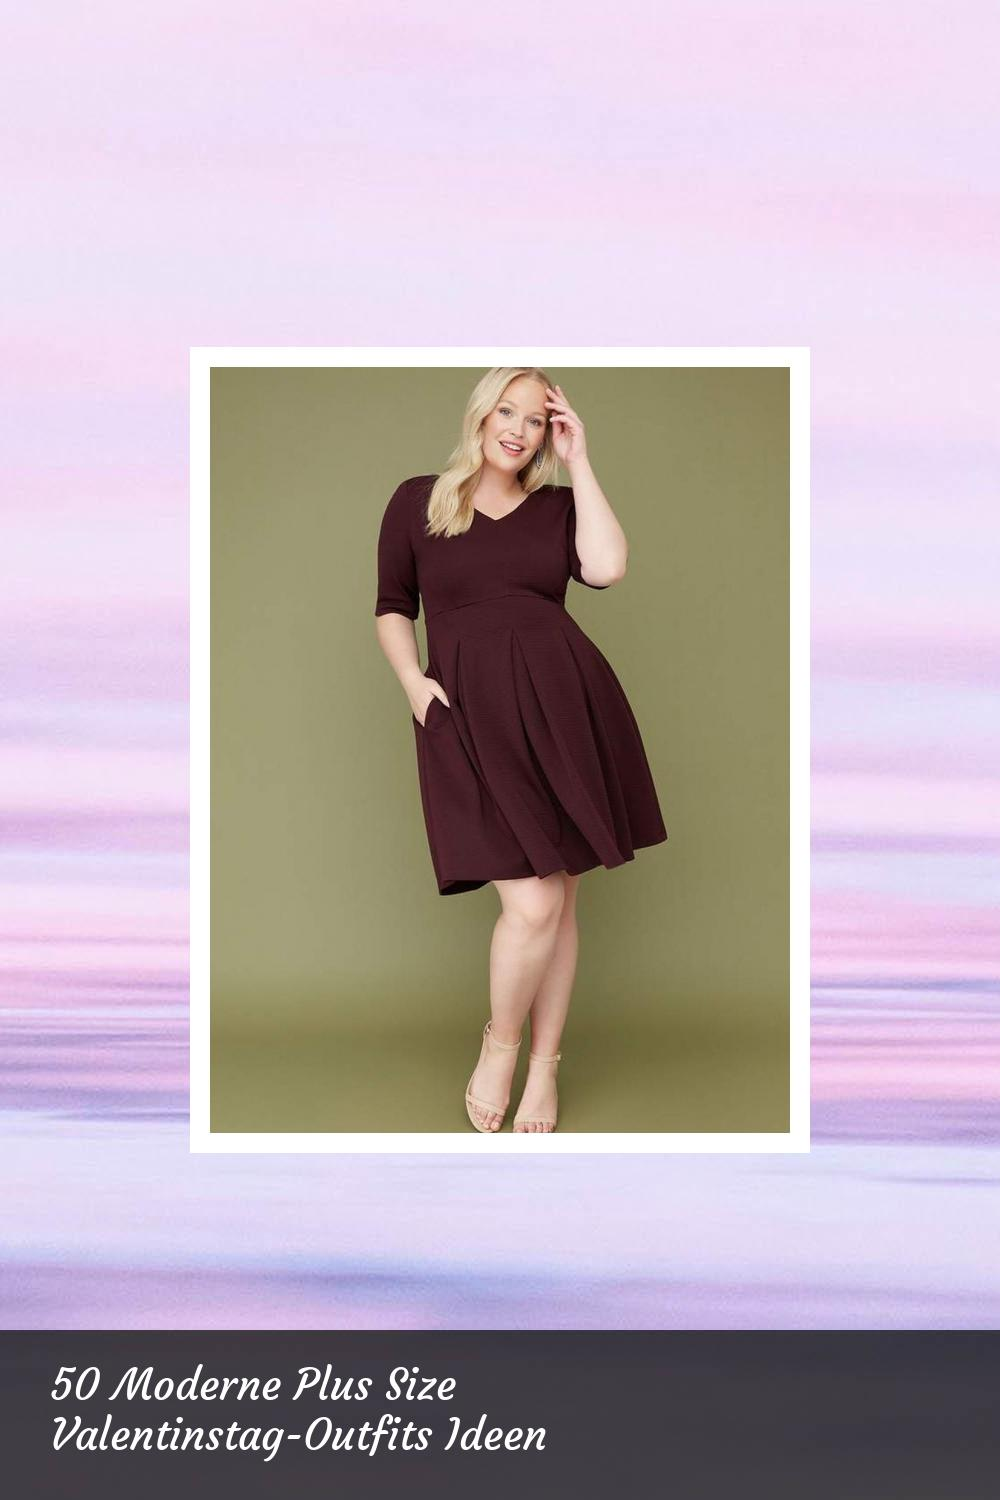 50 Moderne Plus Size Valentinstag-Outfits Ideen 43